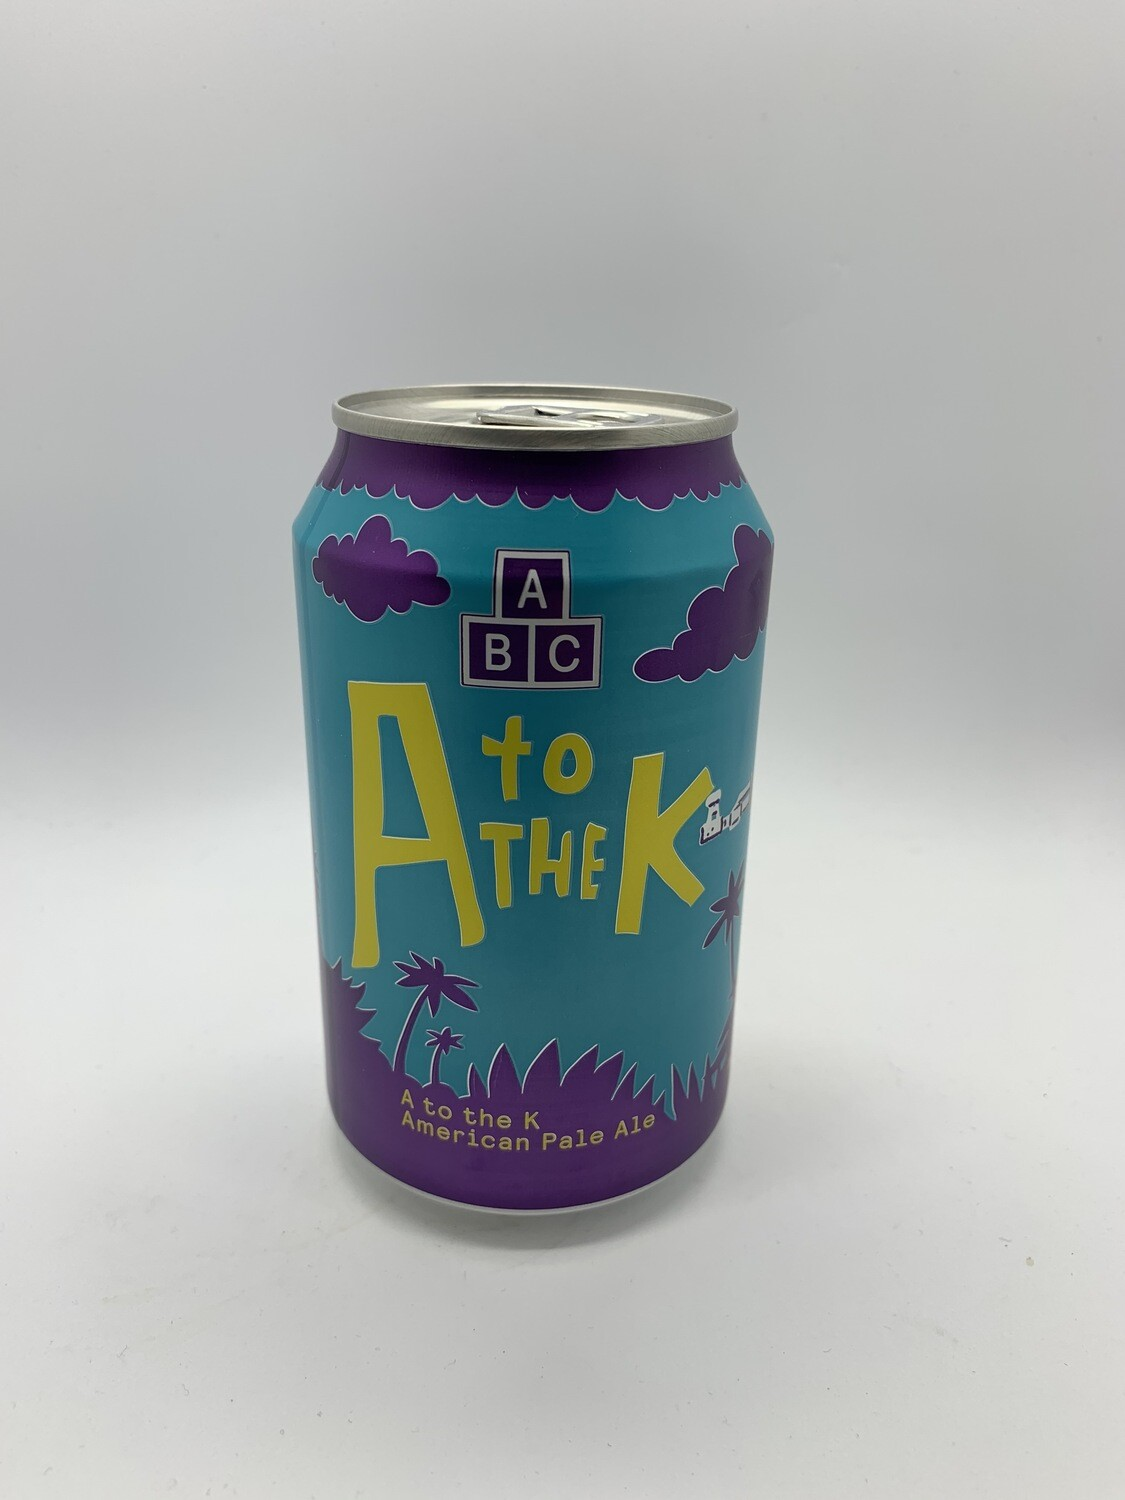 ABC - A to the K